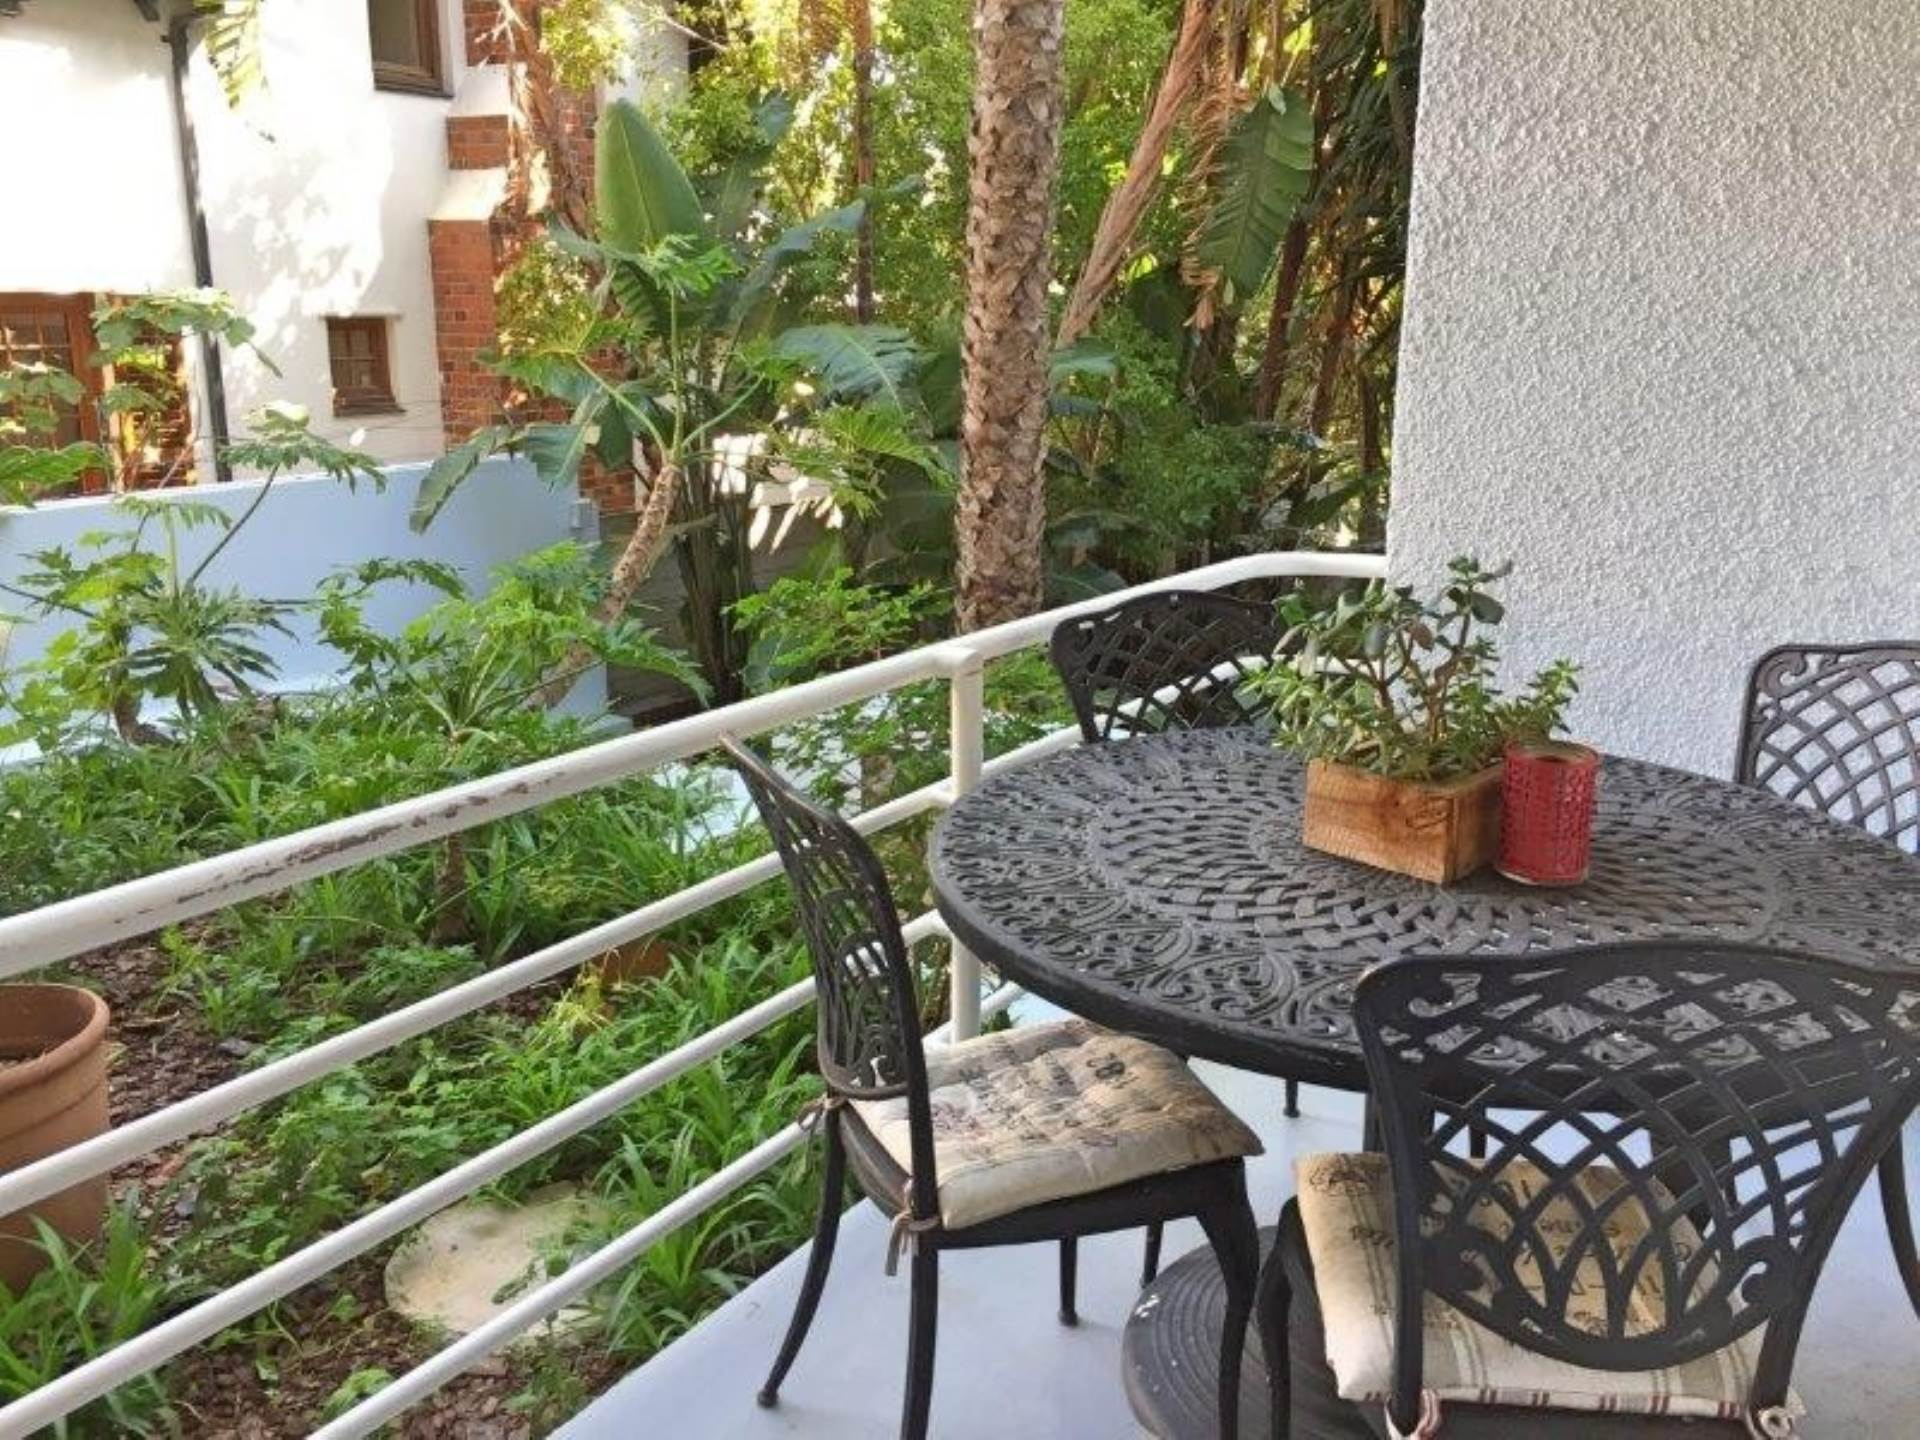 Apartment pending sale in three anchor bay cape town western cape for r 1995000